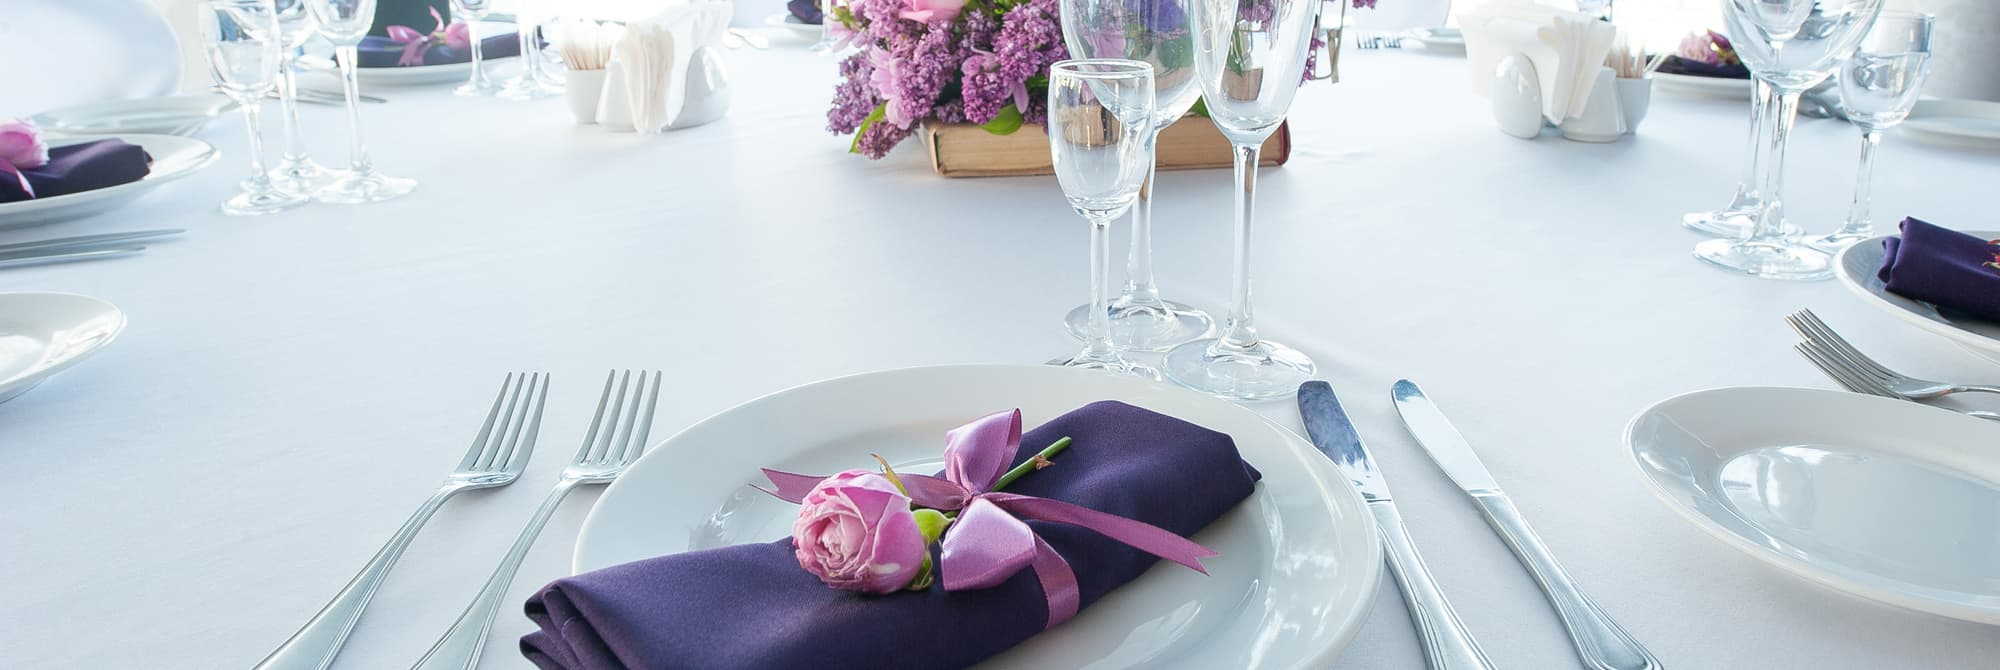 Taste Catering Venues Special Event with Purple Linens